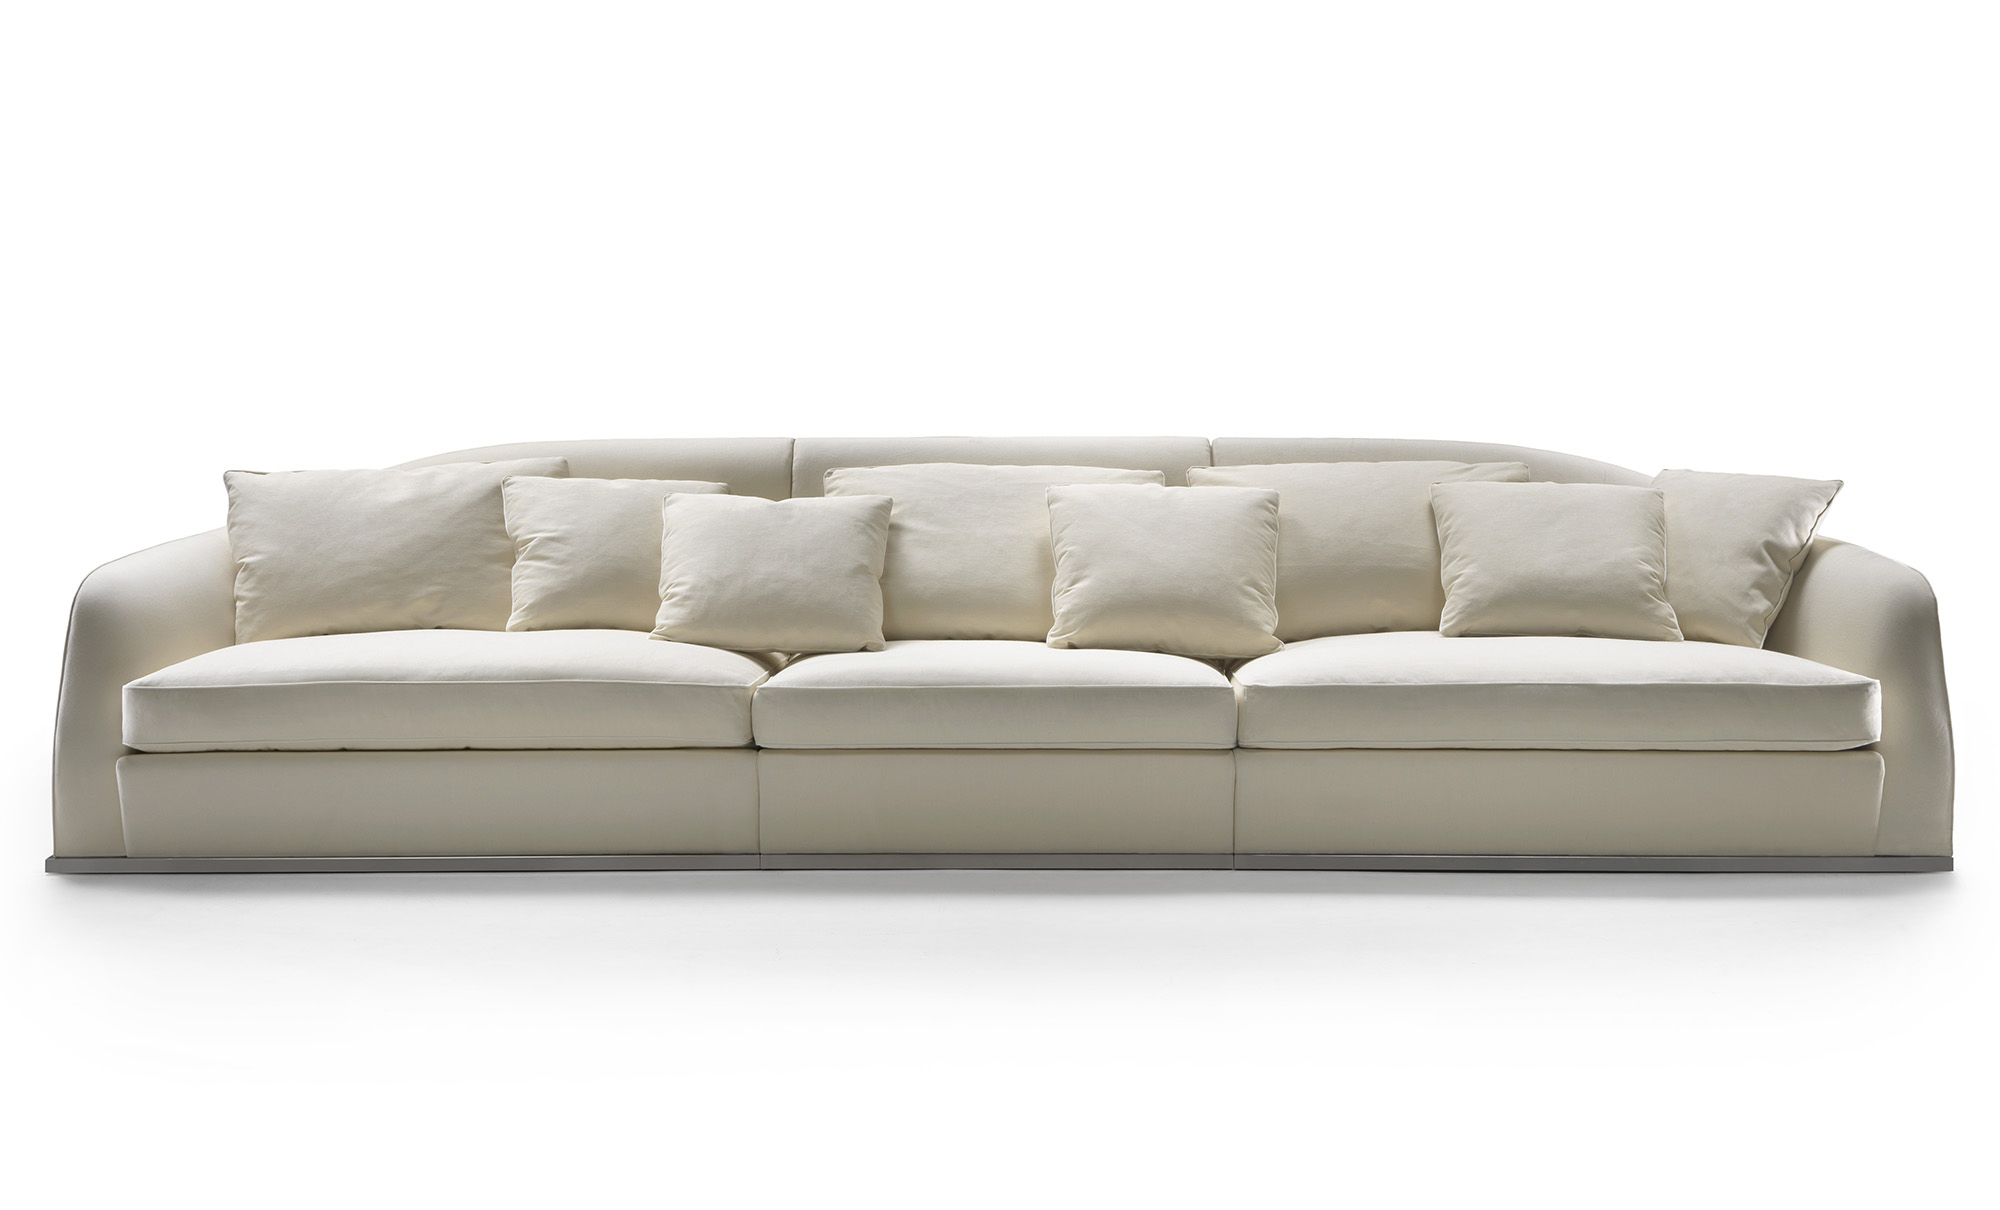 Couches And Sofas Alfred Modular Sofa By Flexform Mood Fanuli Furniture